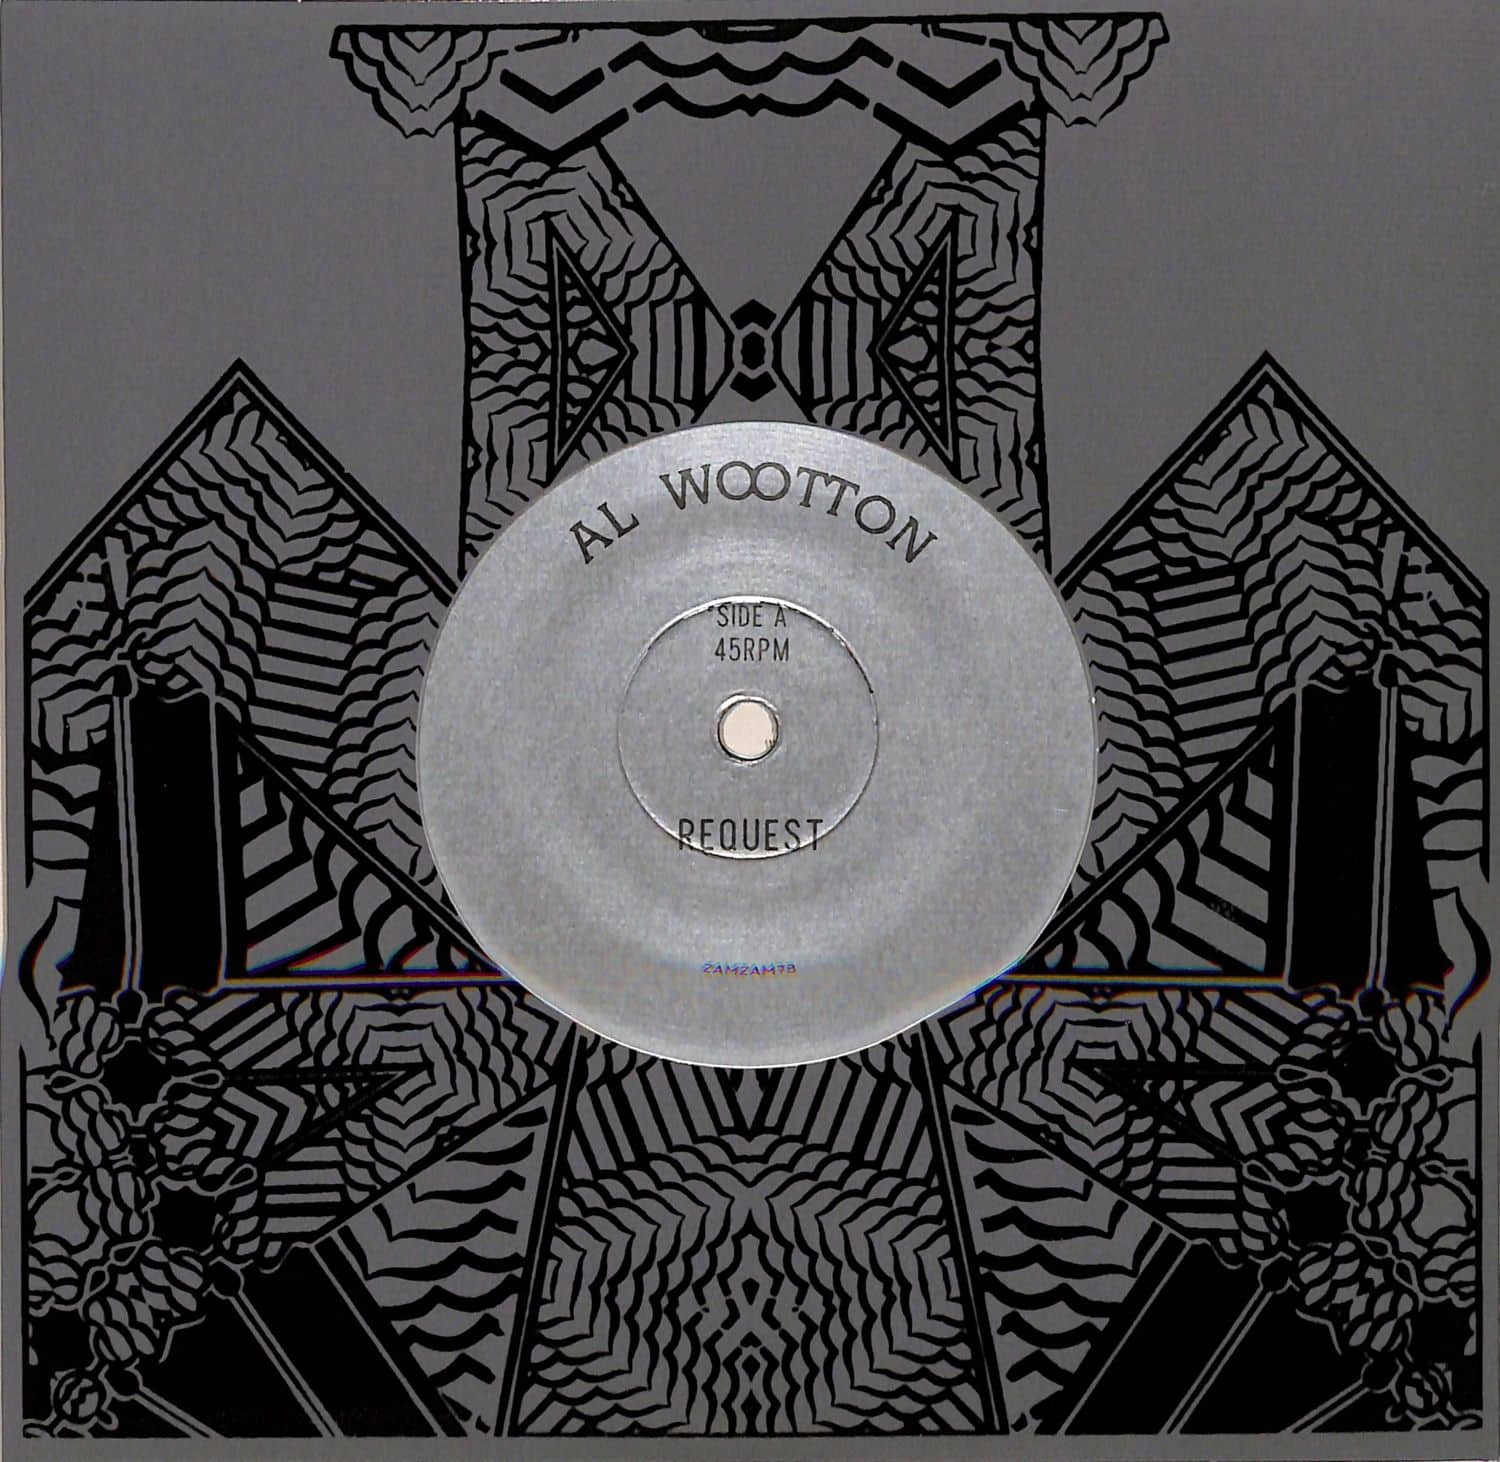 Al Wootton - REQUEST / PHILO